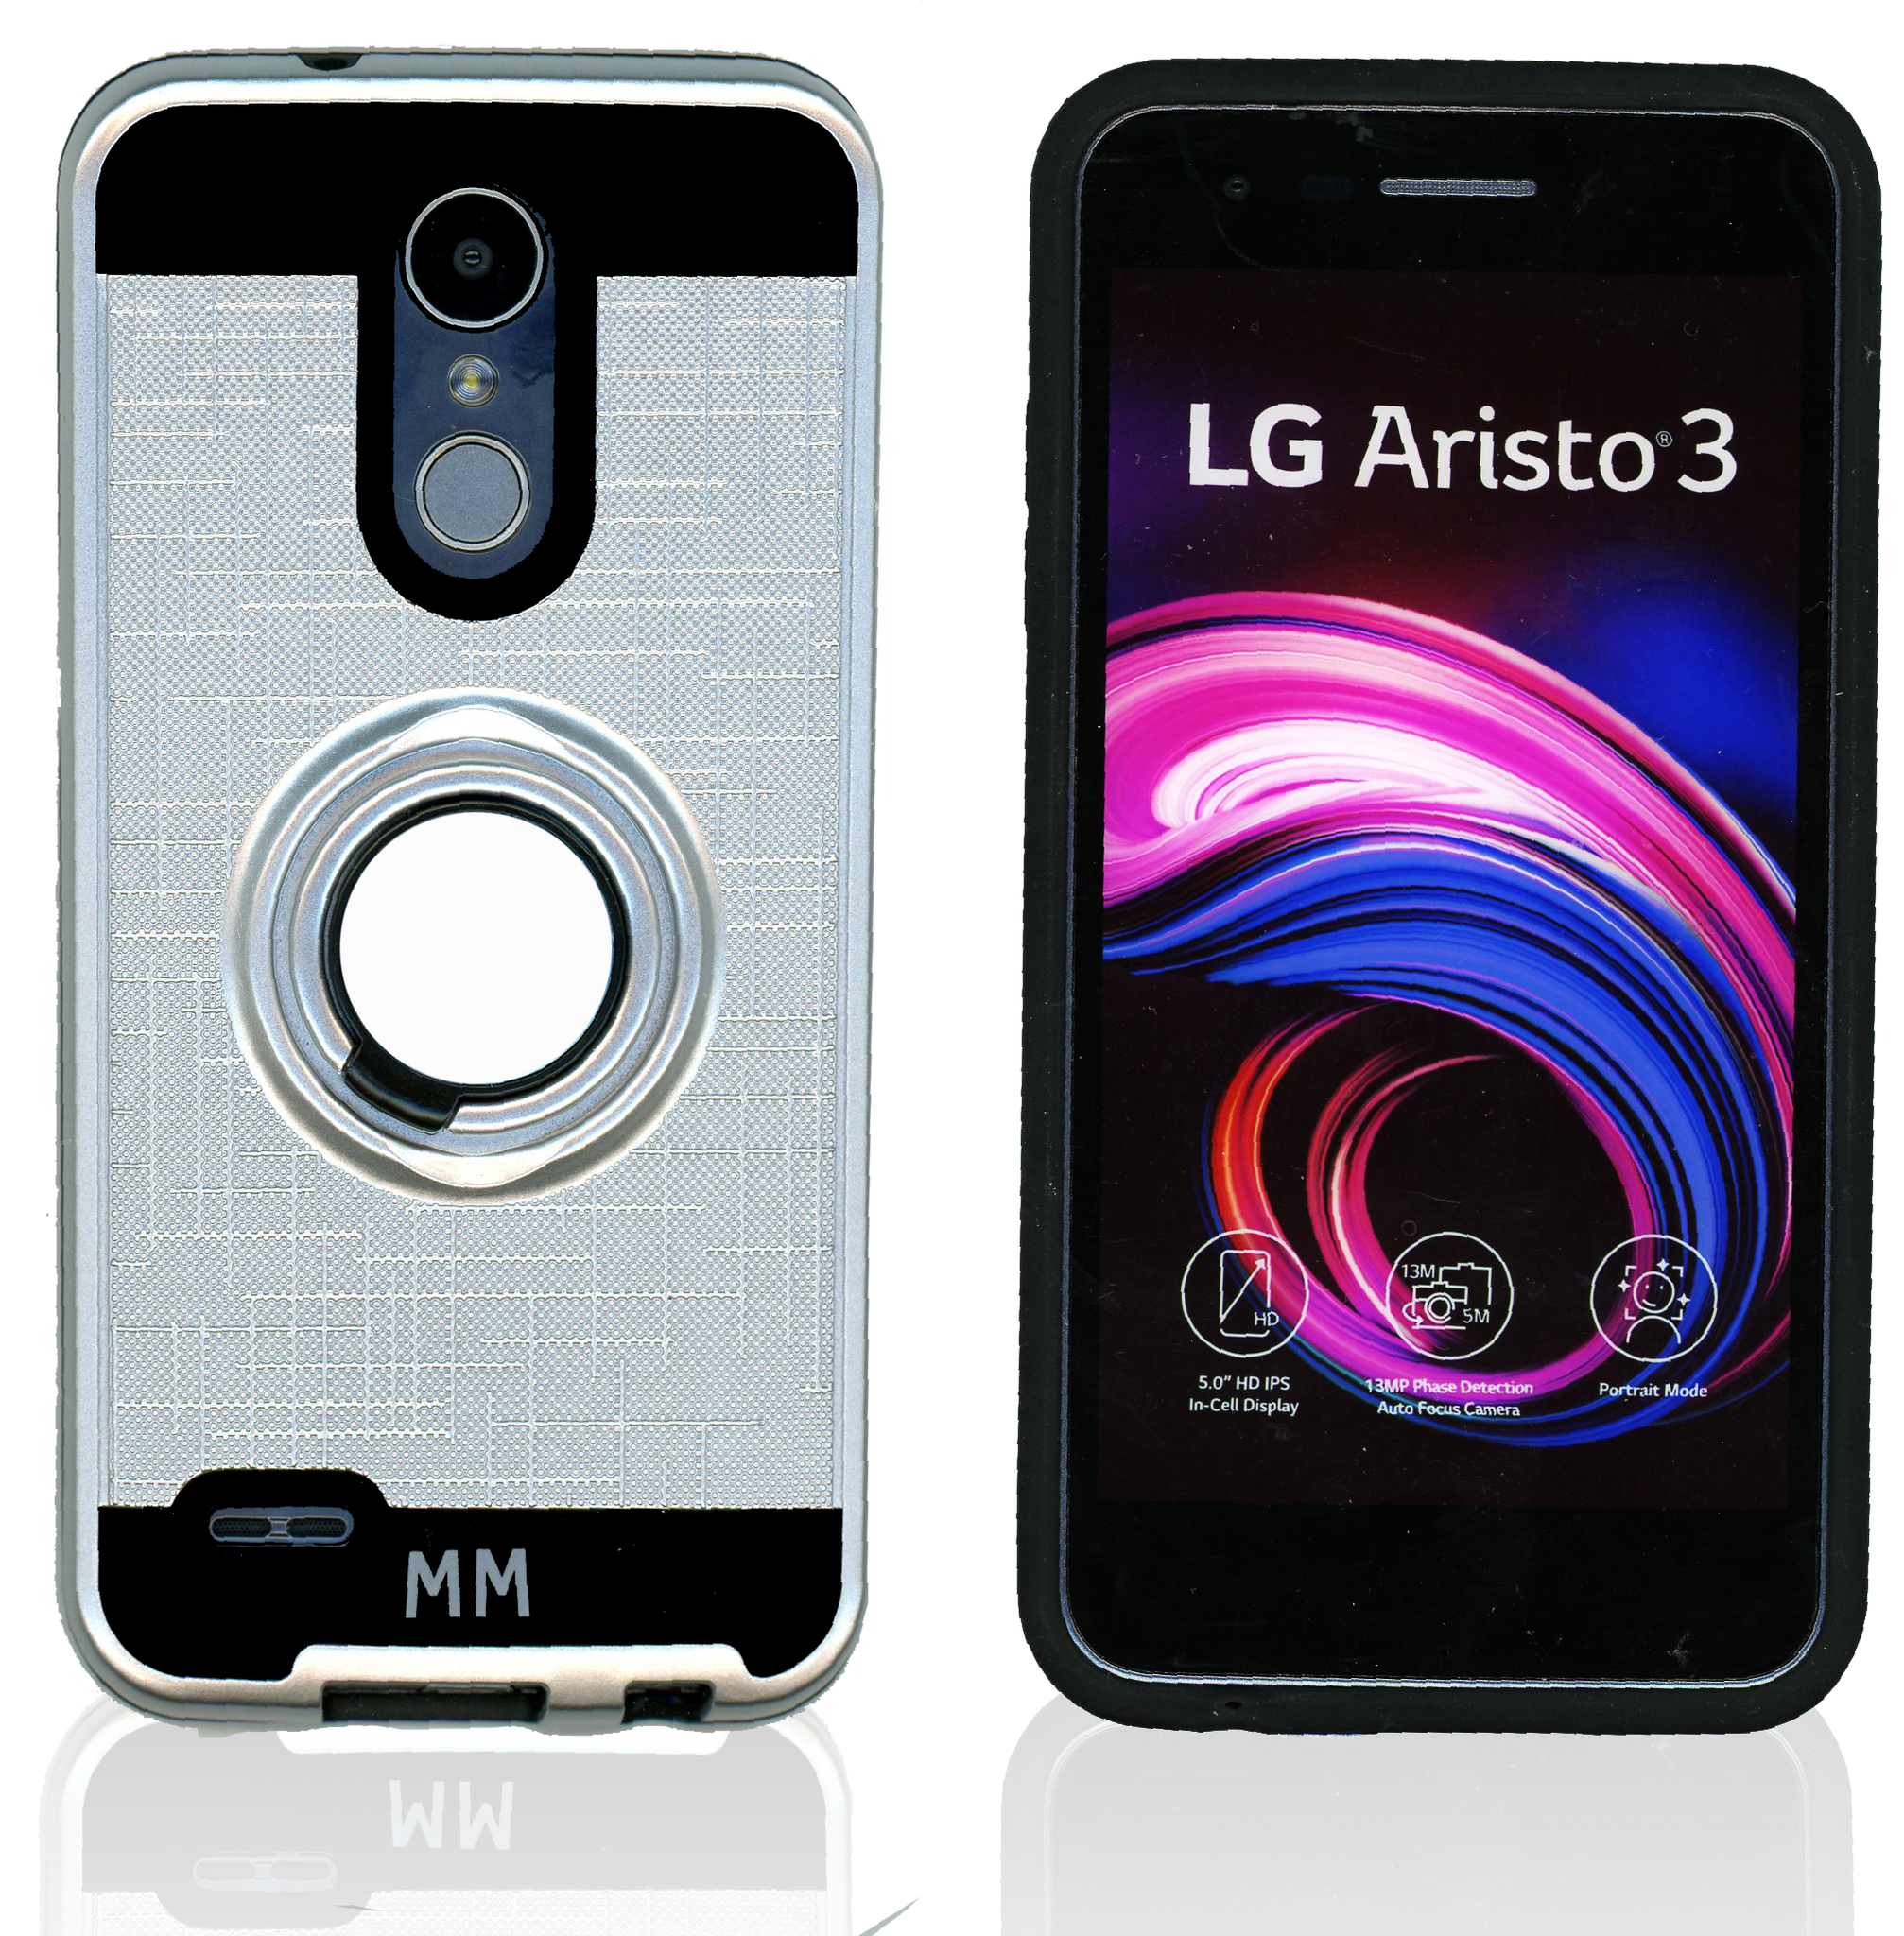 LG Aristo 3+/3/2/EMPIRE MM Ring Stand Case Silver